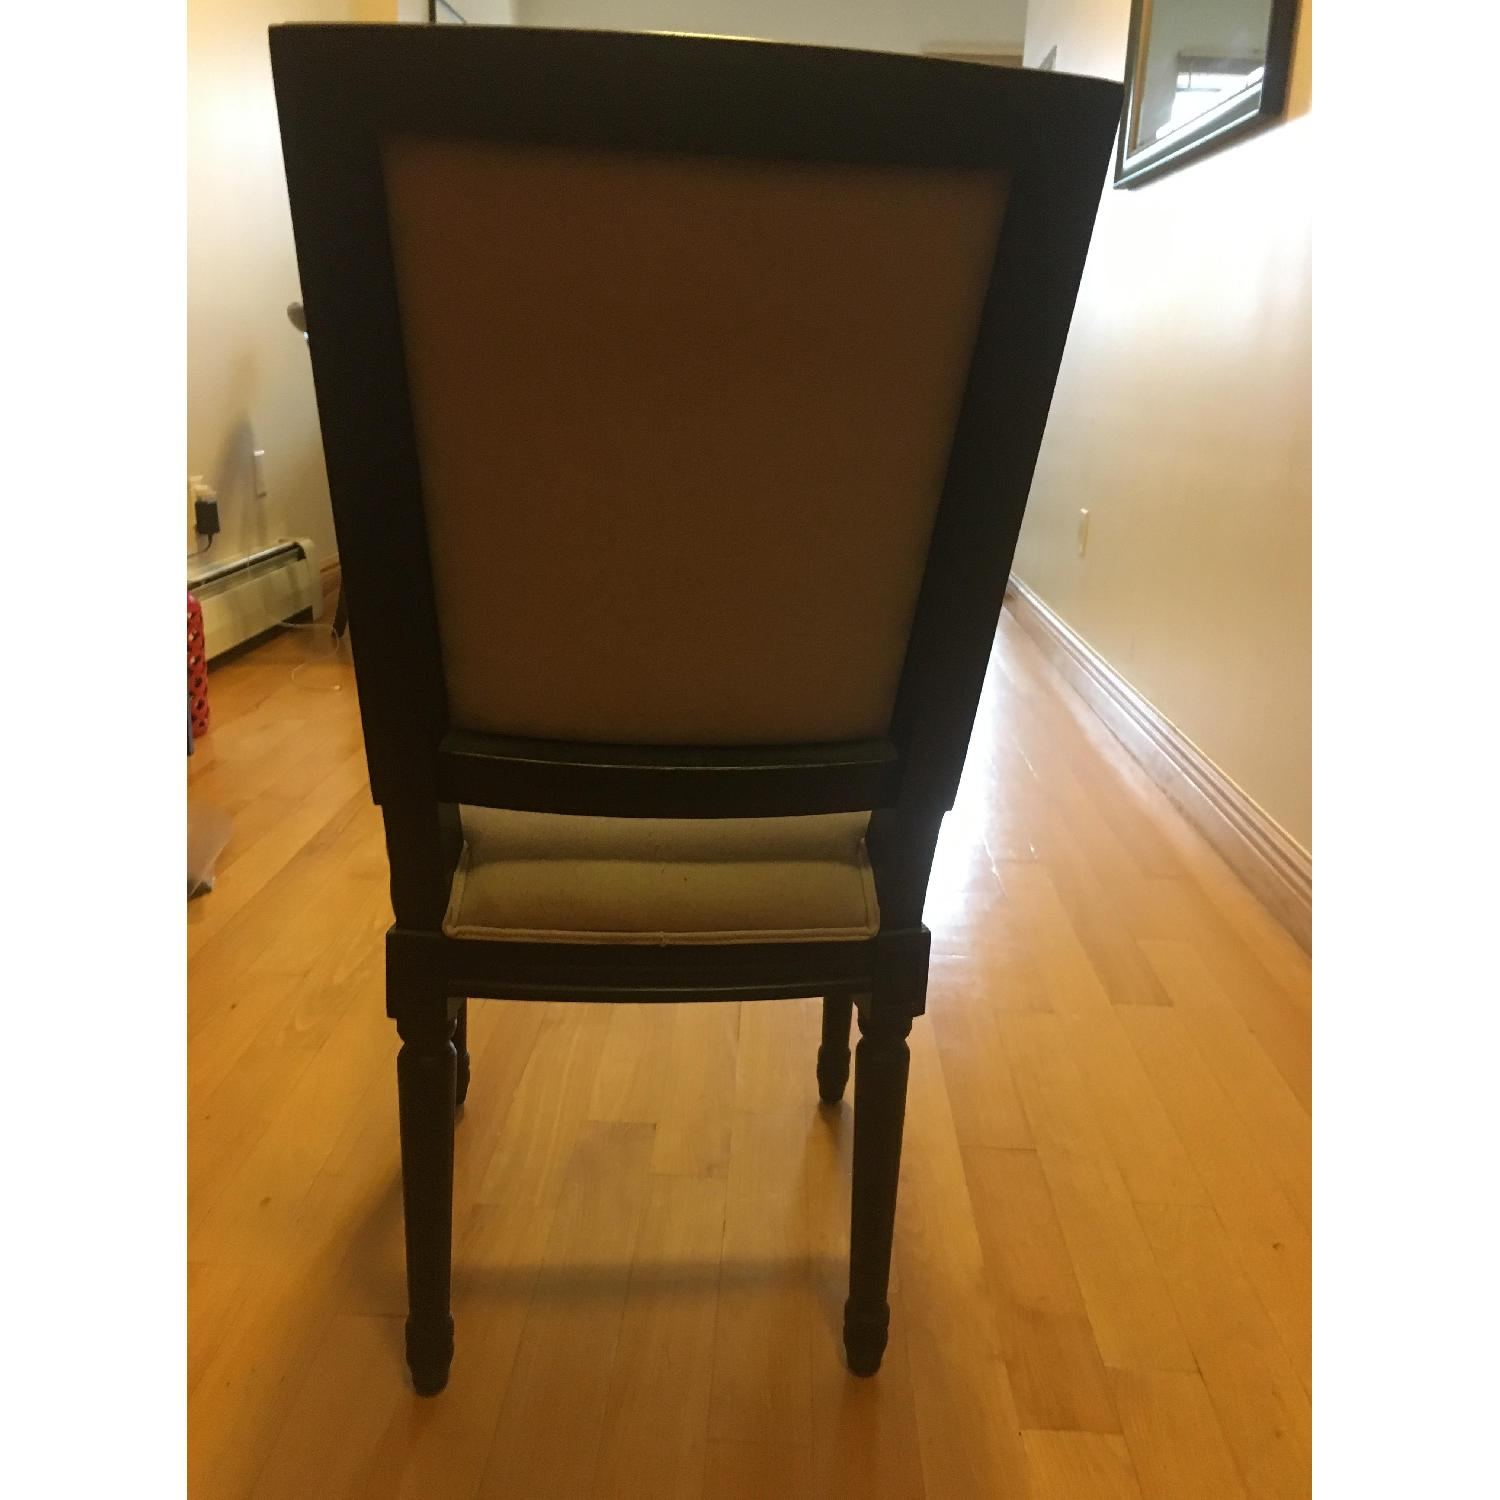 Safavieh Dining Chairs in Black & Gray - image-3